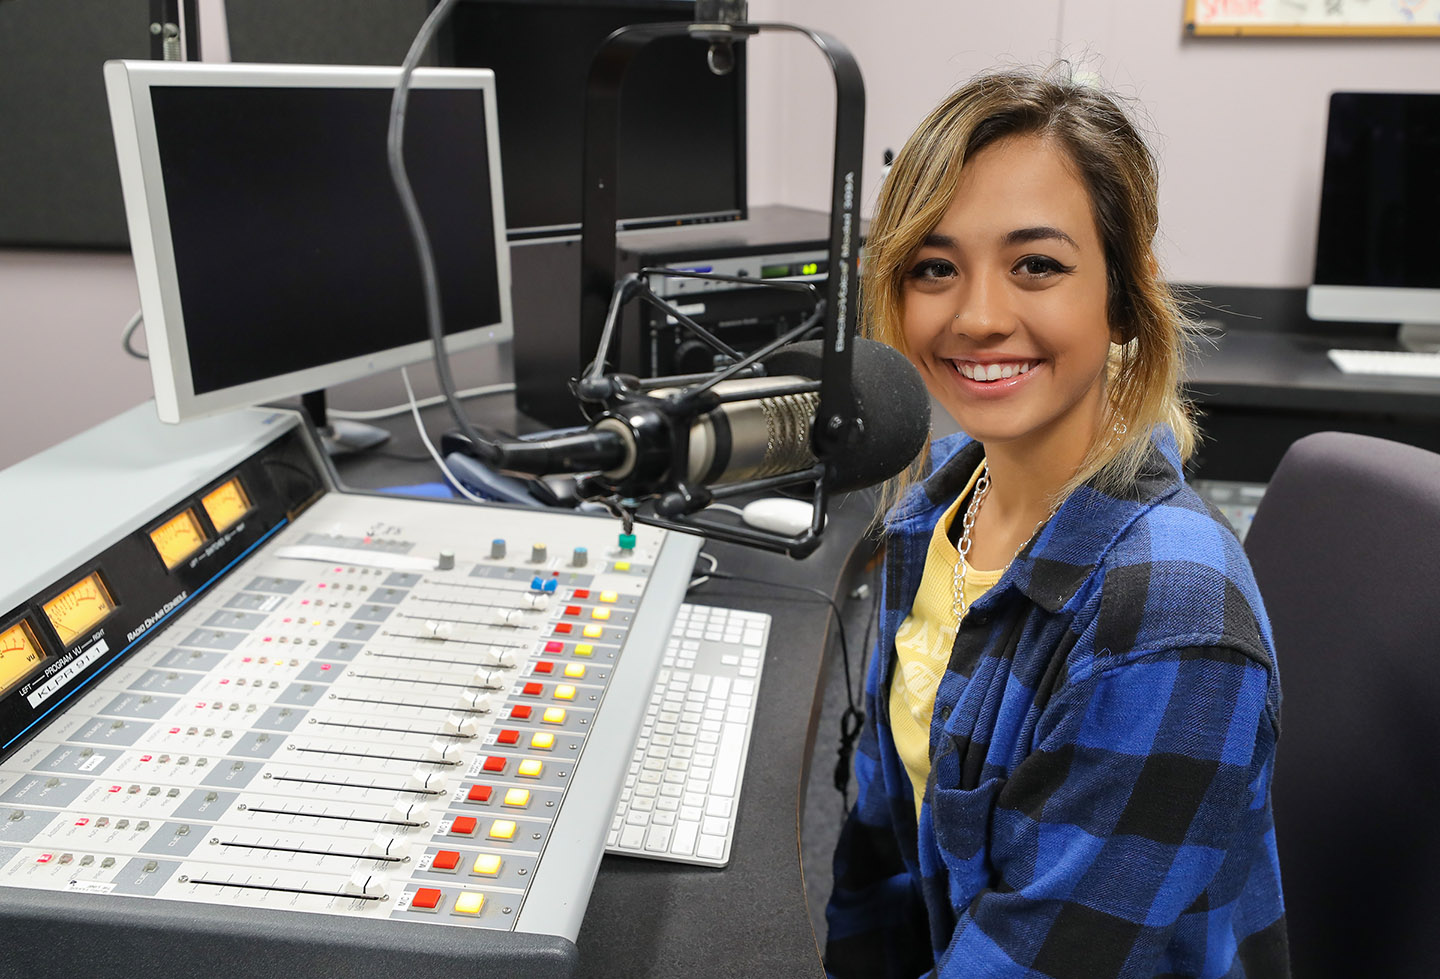 Alexis Sander is a sports communication major at UNK, where she announces games and co-hosts a weekly sports talk show on the campus radio station, KLPR 91.1 FM.